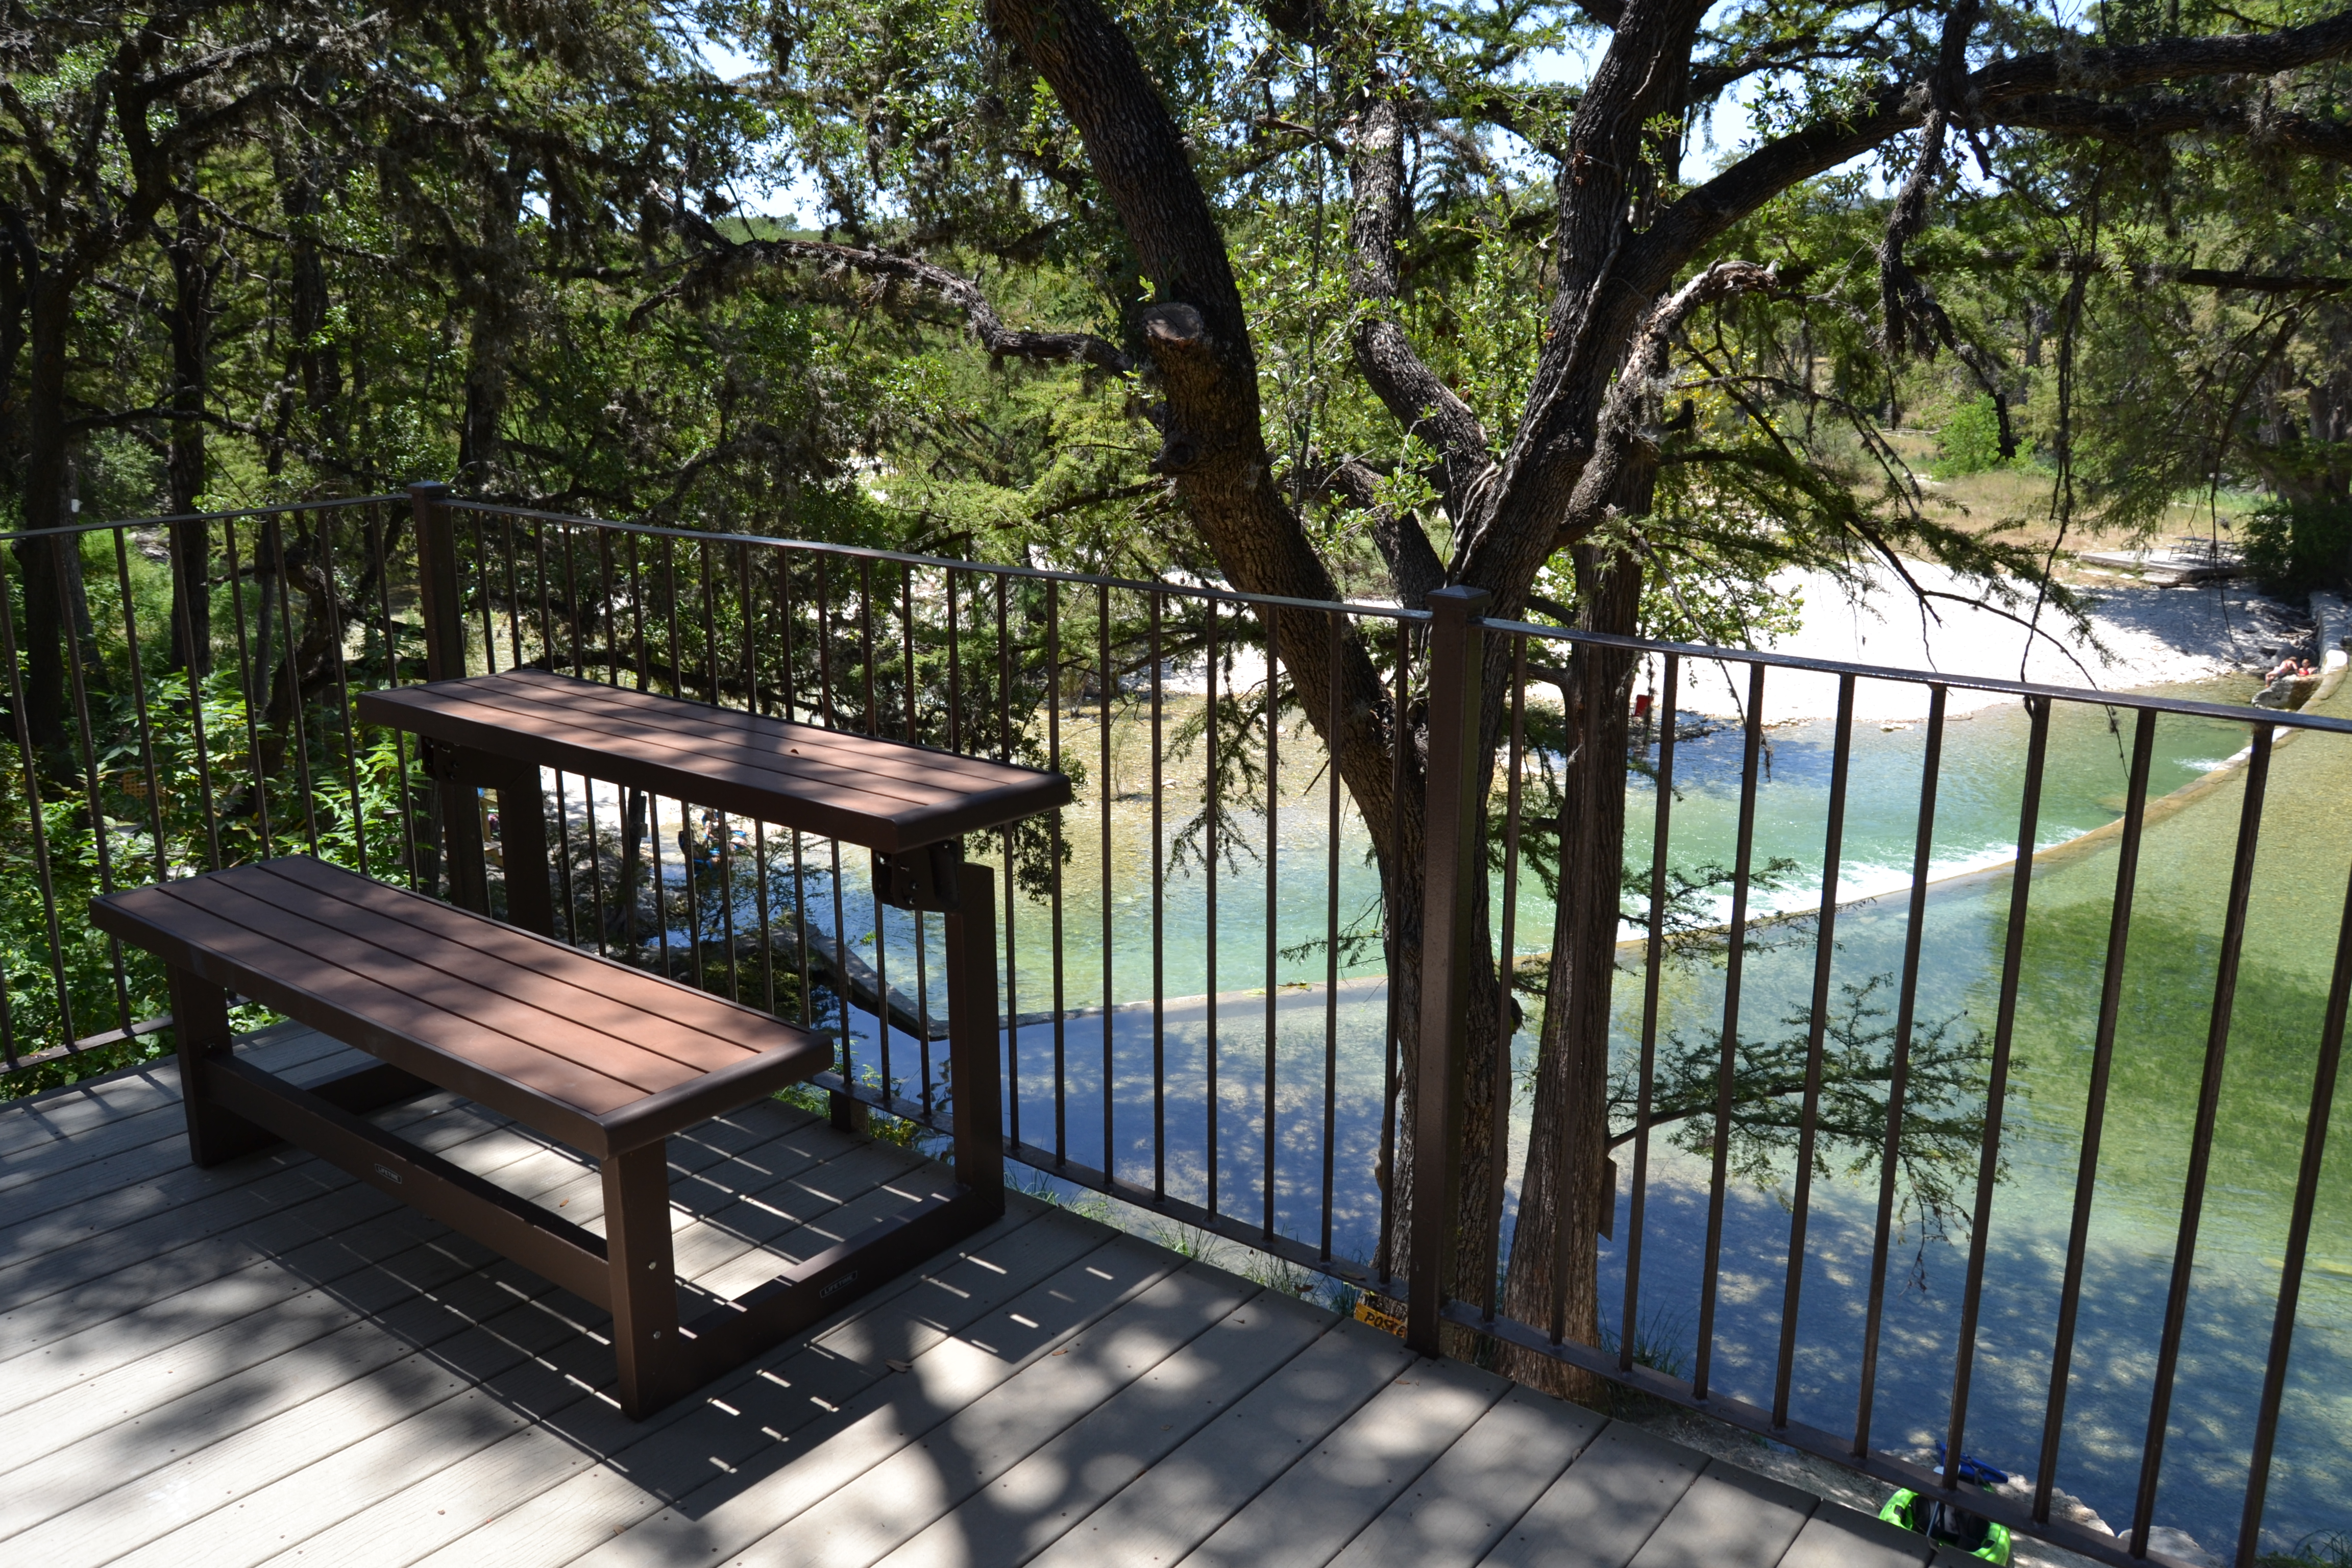 tx in texas for cabins river cabin rent lakeside east onlinechange frio rental interior info